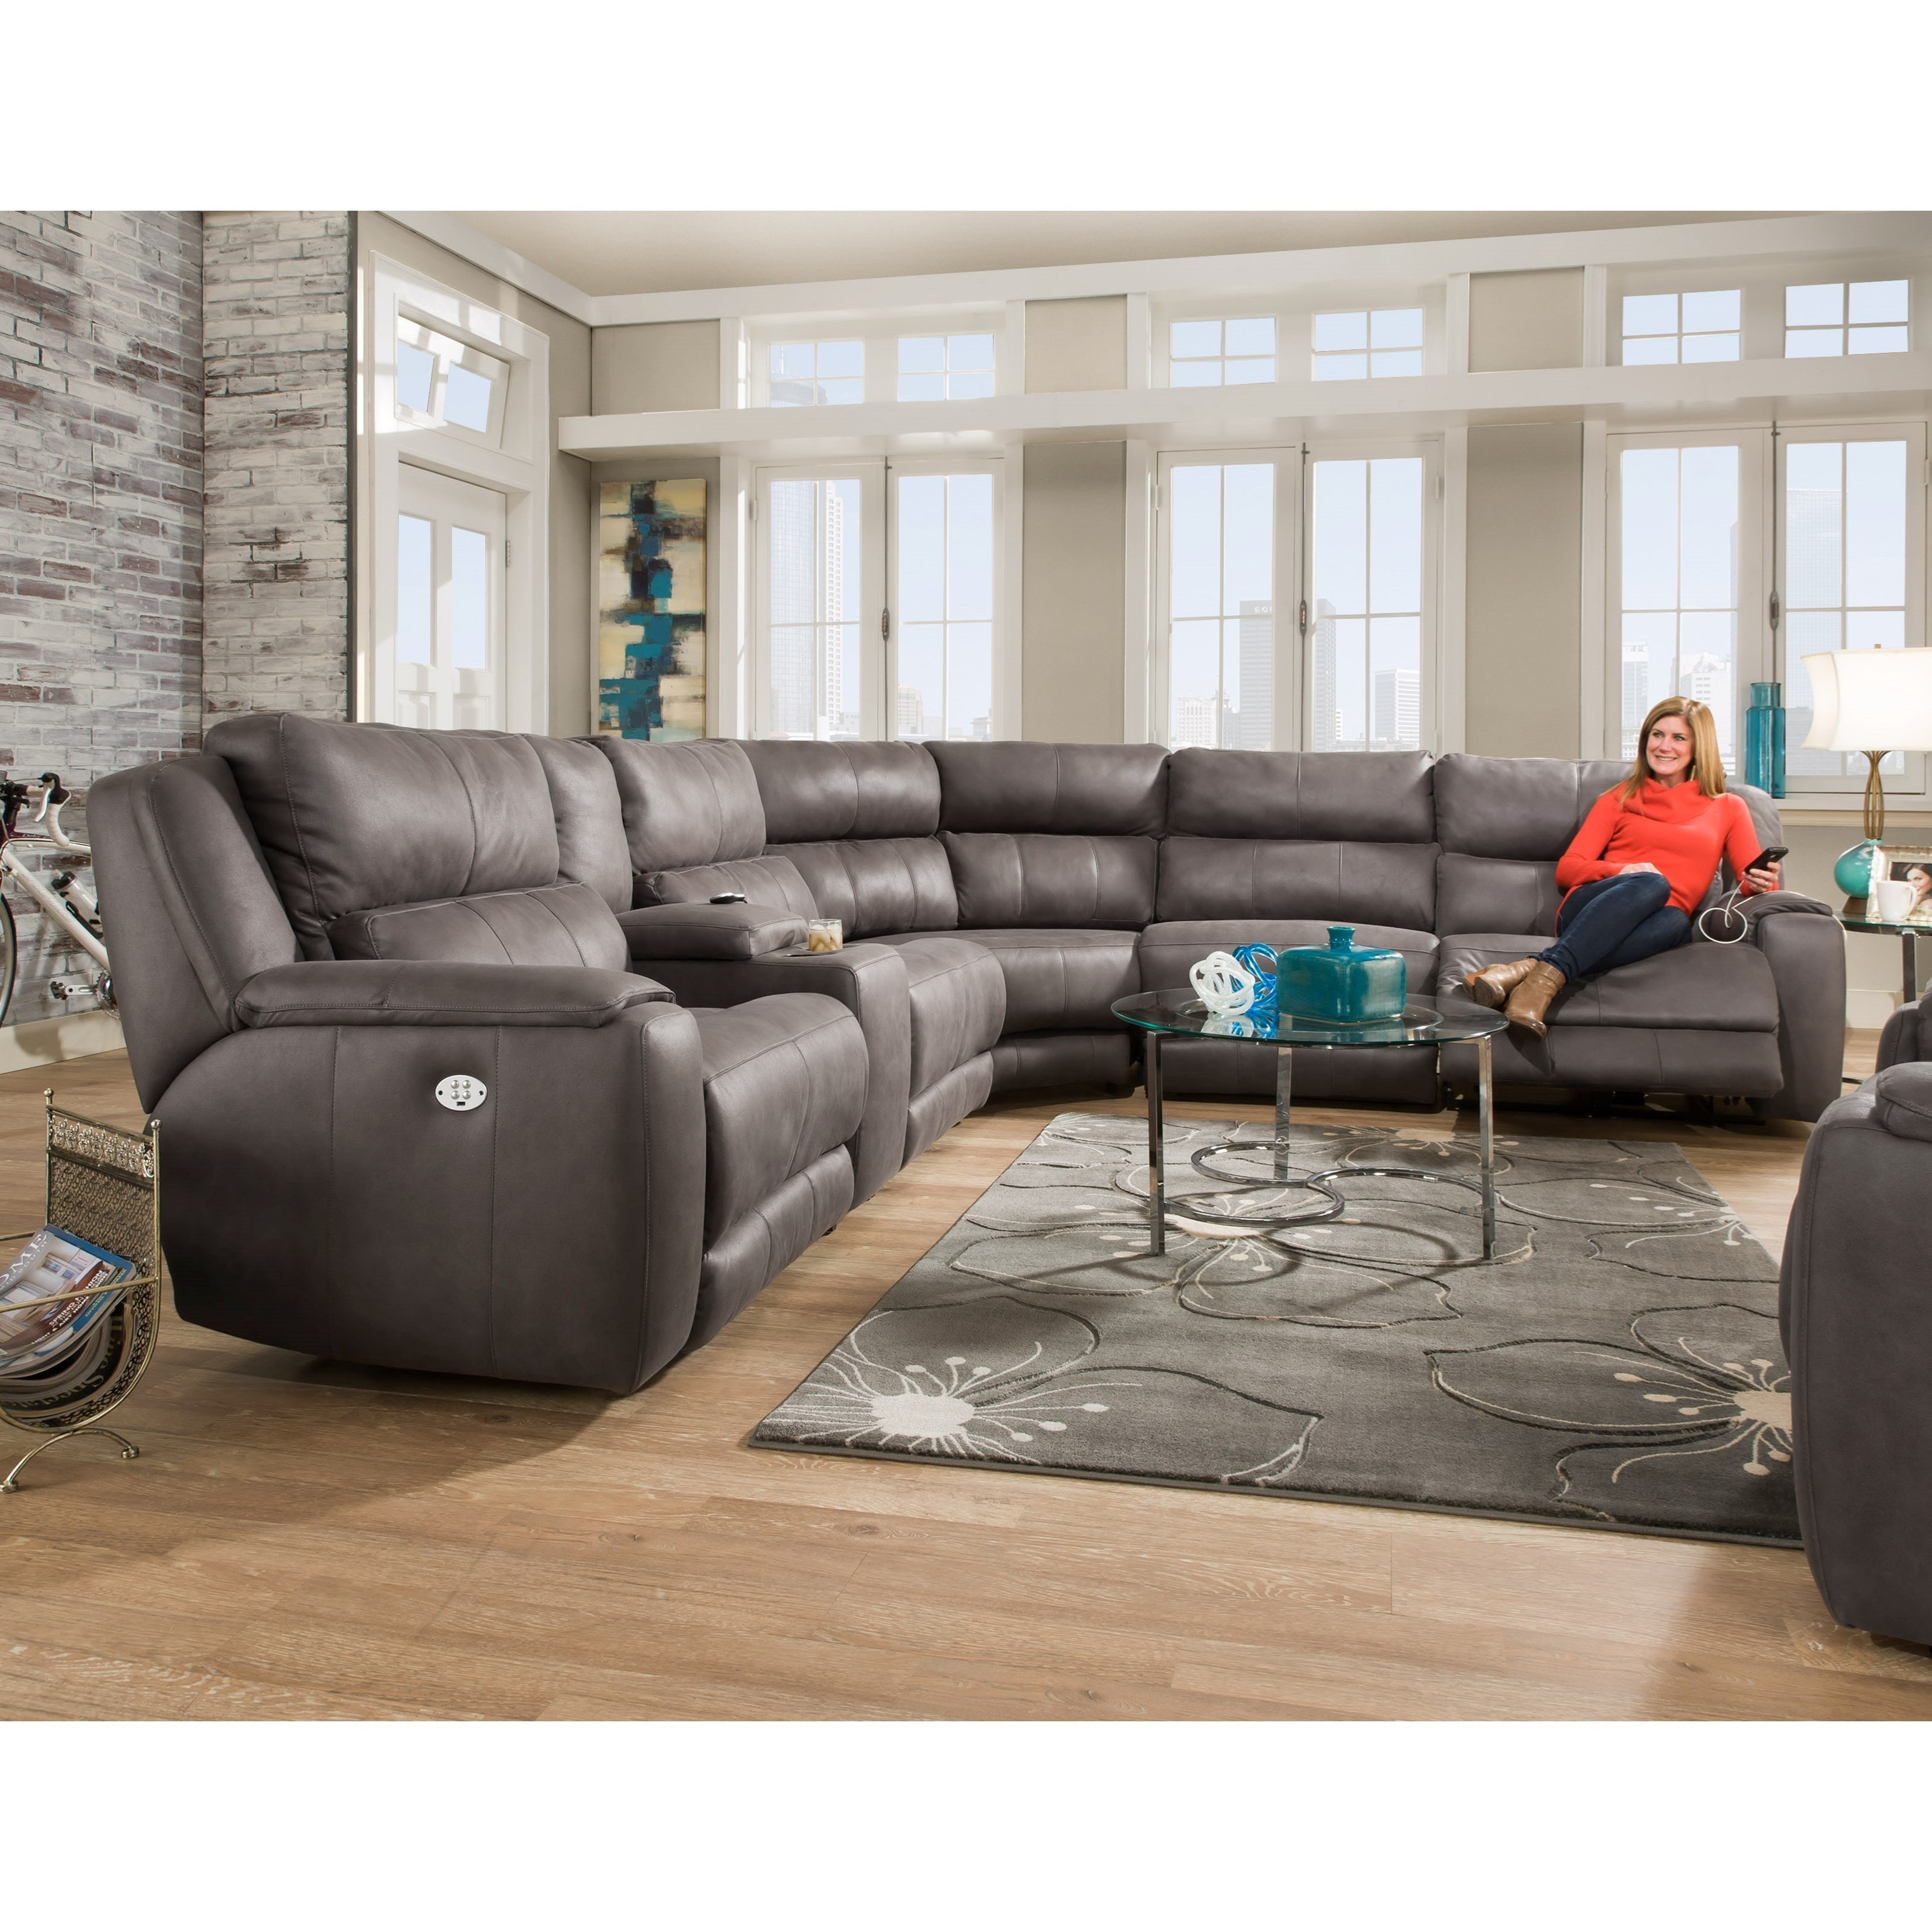 plus reclining sectional sofa